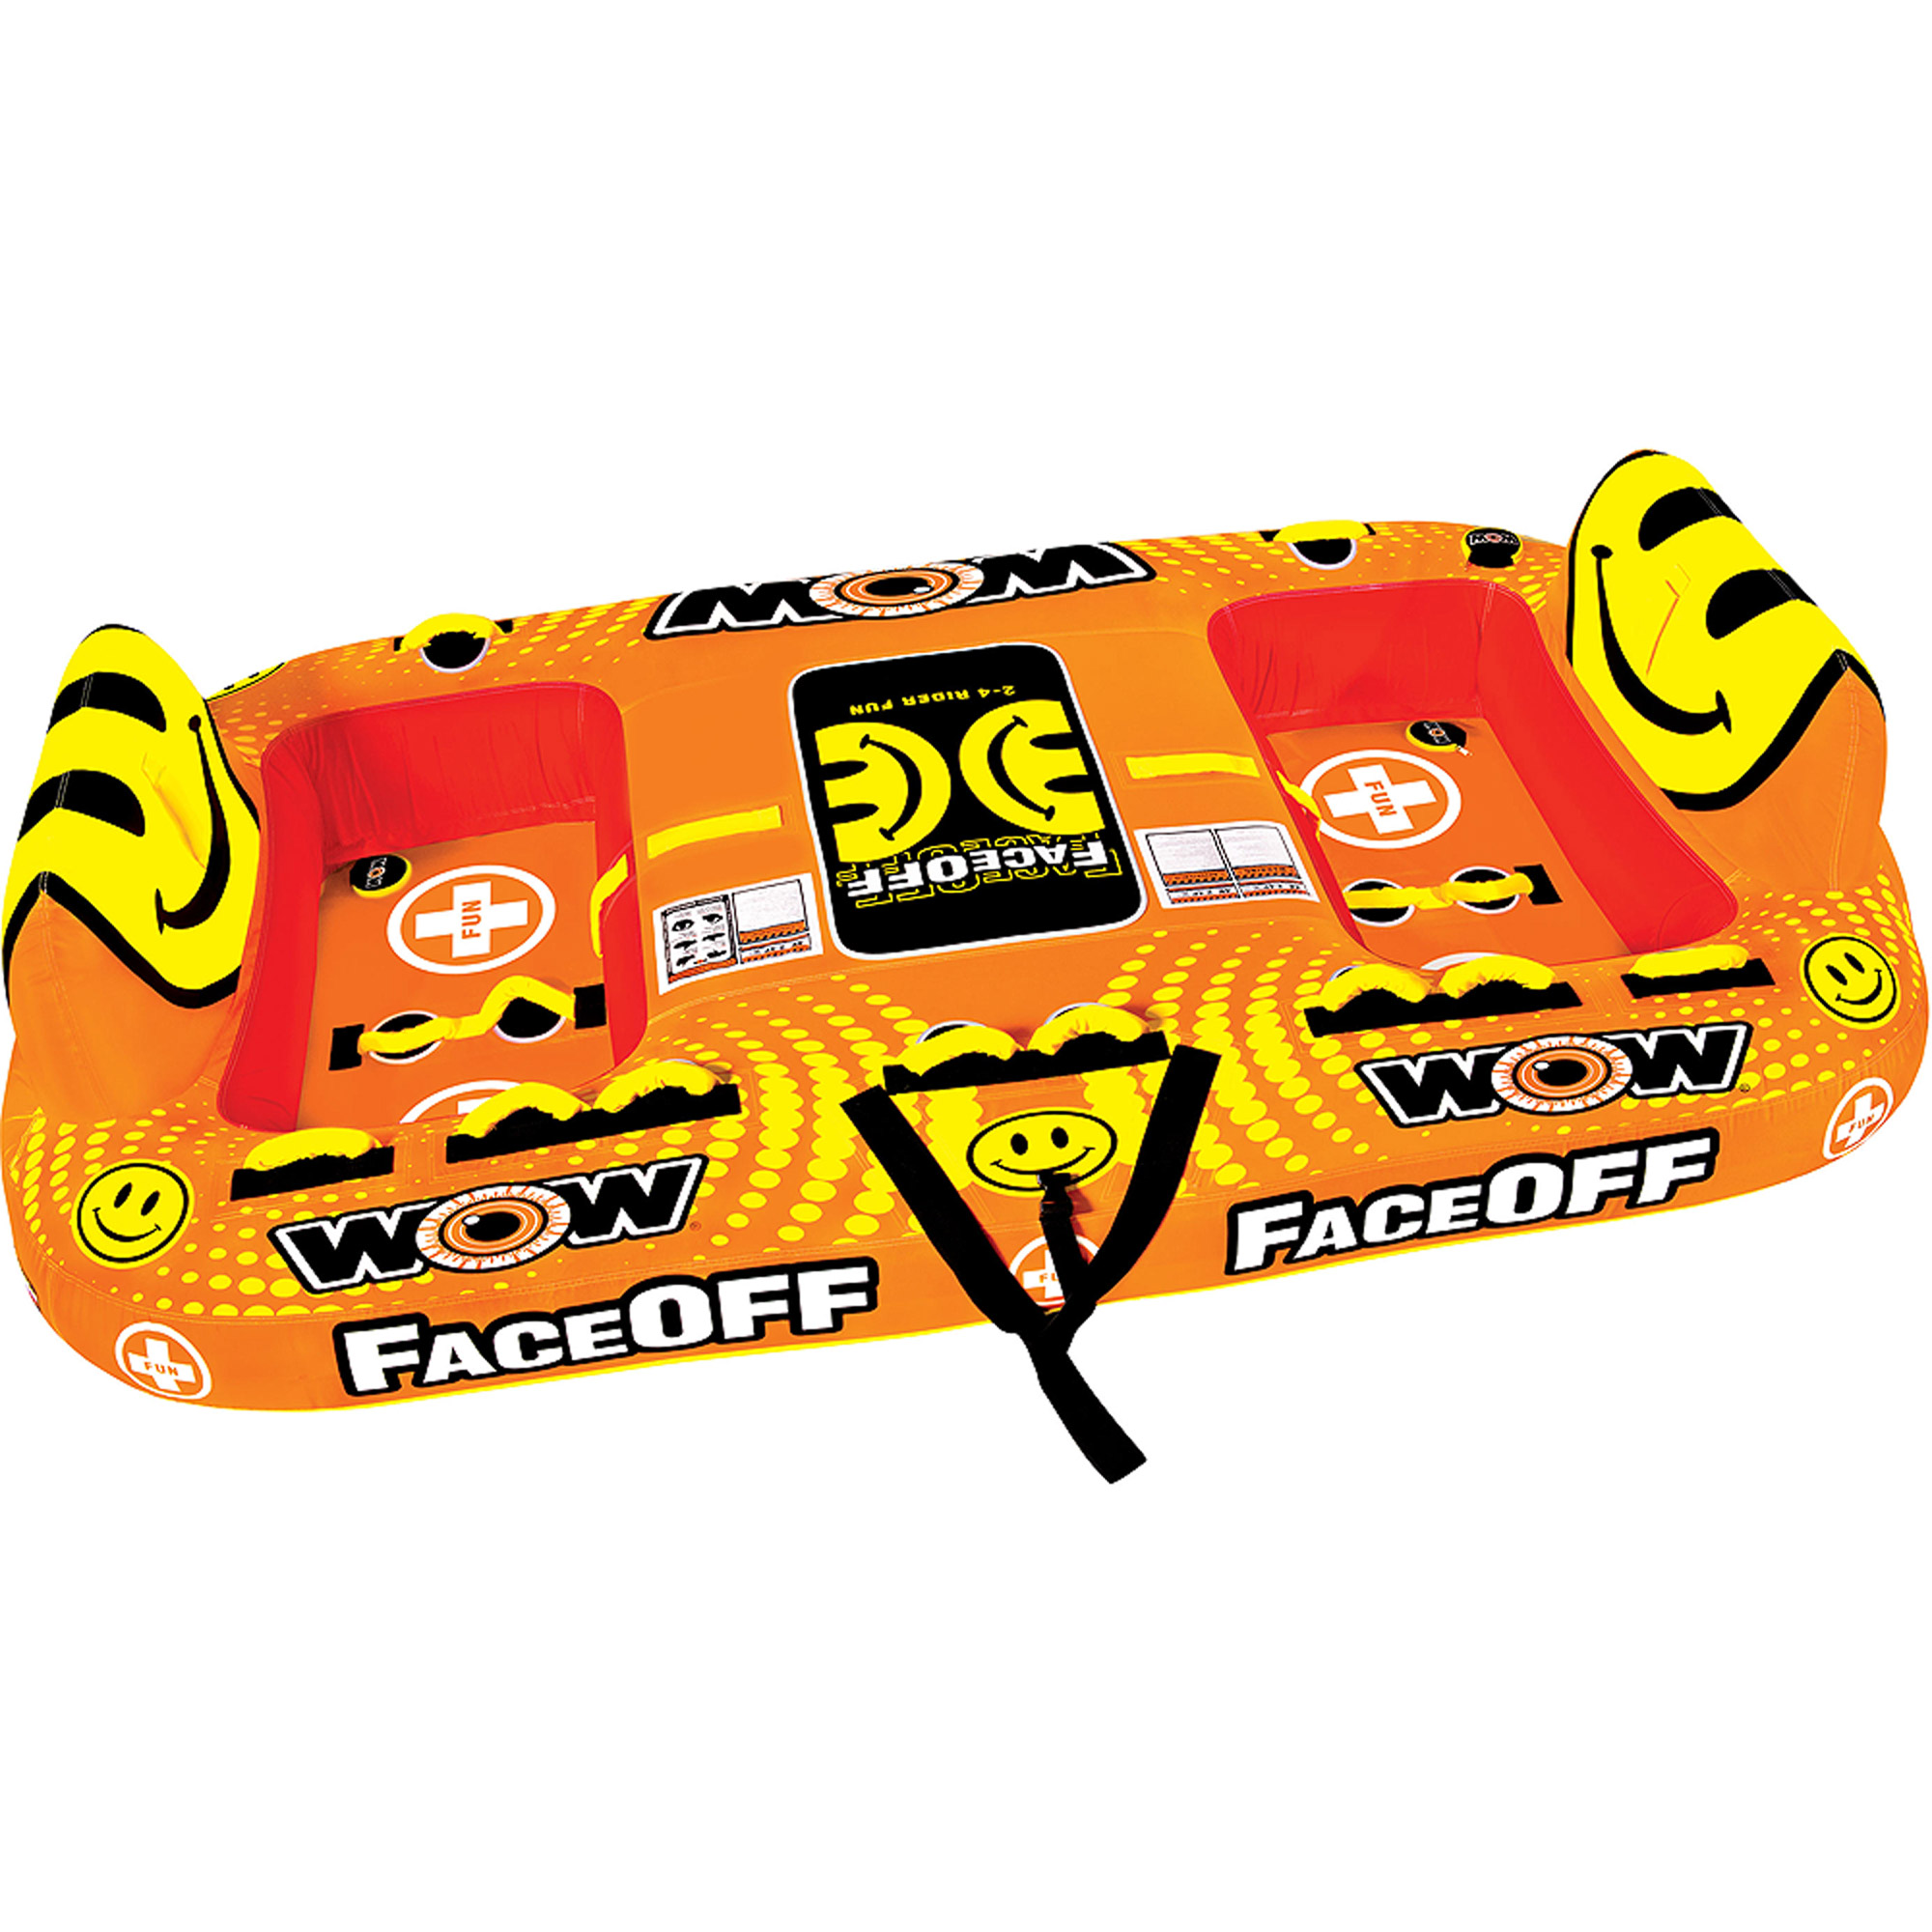 Click here to buy WOW World of Watersports, 15-1050, Face-Off Towable, Ride Face to Face, 1 to 4 Person by World of Watersports.